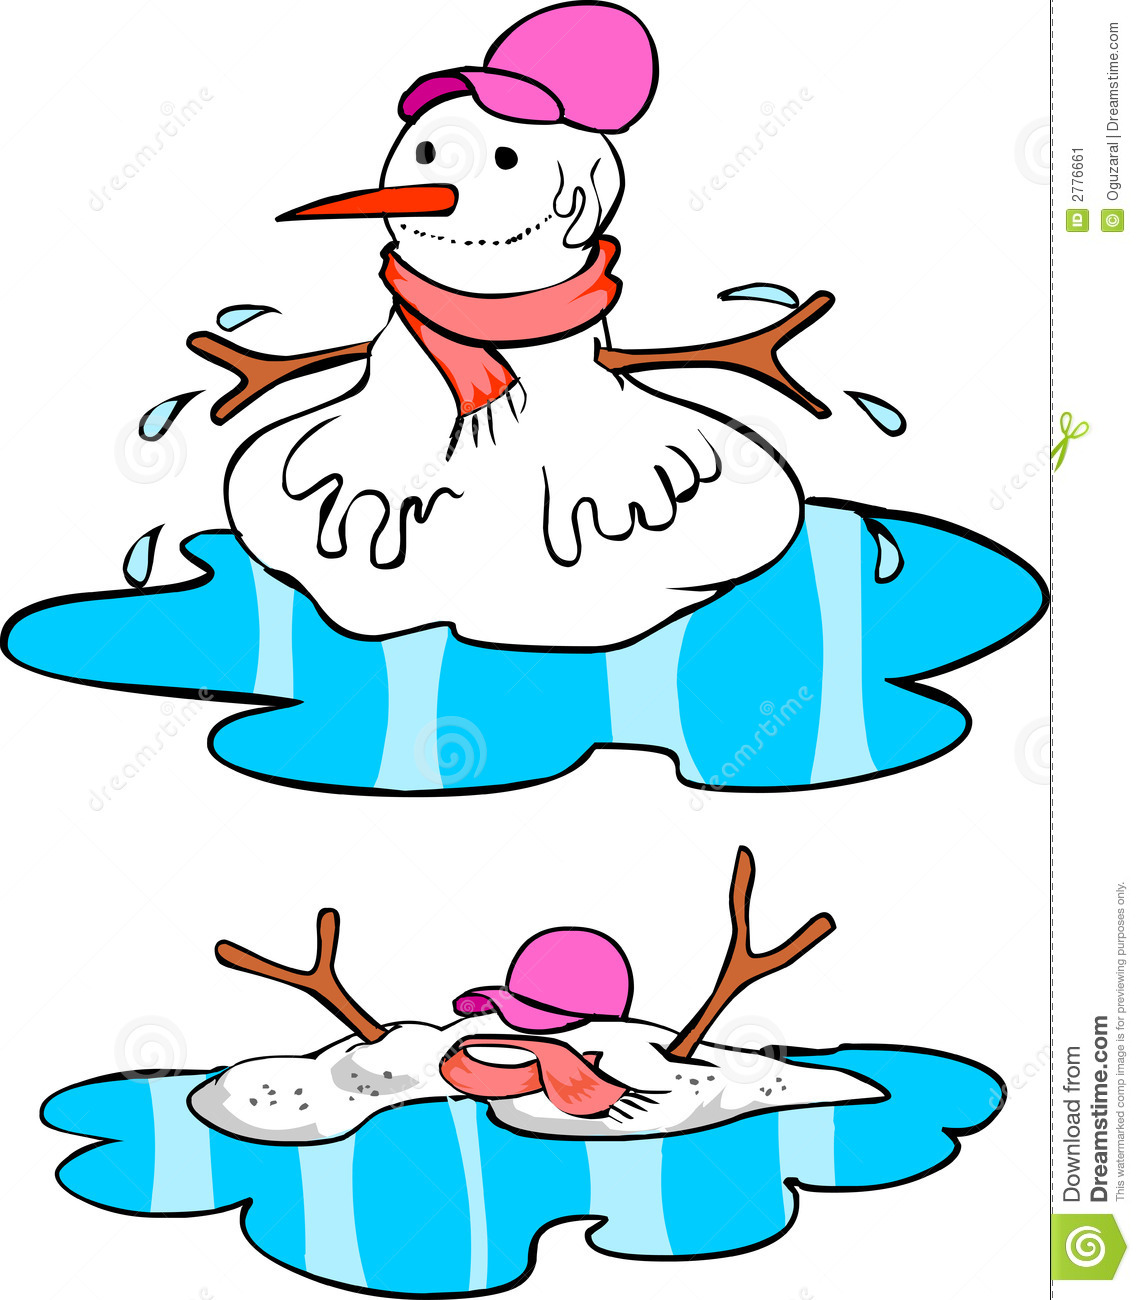 Snowman stock vector. Illustration of cute, black, funny - 2776661 for Melting Snowman Clipart  239wja